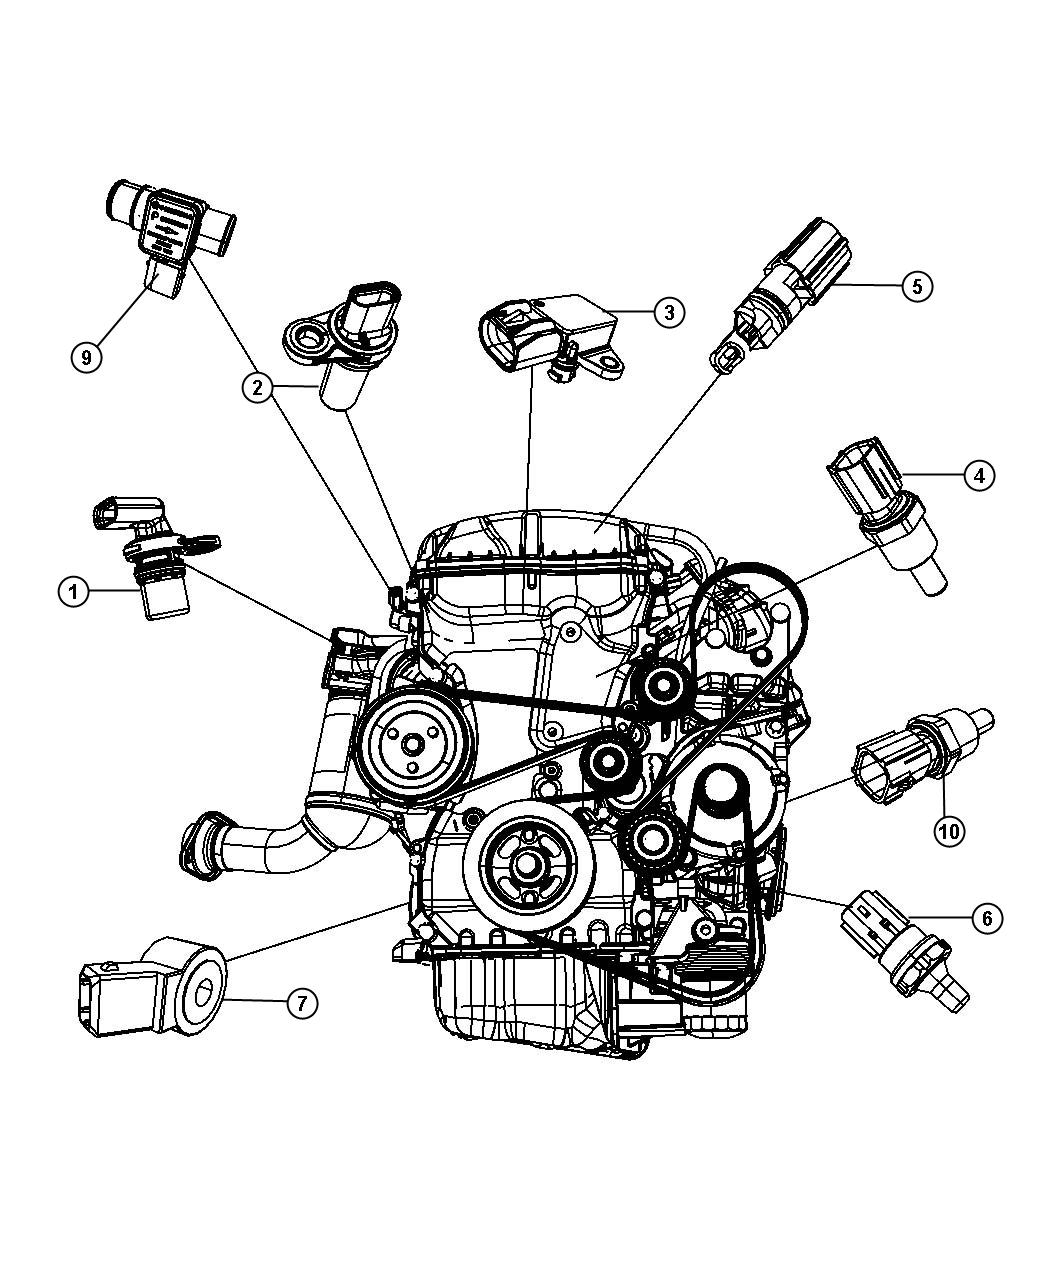 The Ins And Outs Of Engine Timing And What Happens When It Goes Wrong moreover Dodge Ram 1500 360 Engine Diagram in addition 651 Opel Starter Astra Kadett Cub Corsa 160i 16i 180i 18i Oe 96208781 10455506 further ShowAssembly as well P0340 Jeep. on jeep crankshaft position sensor location